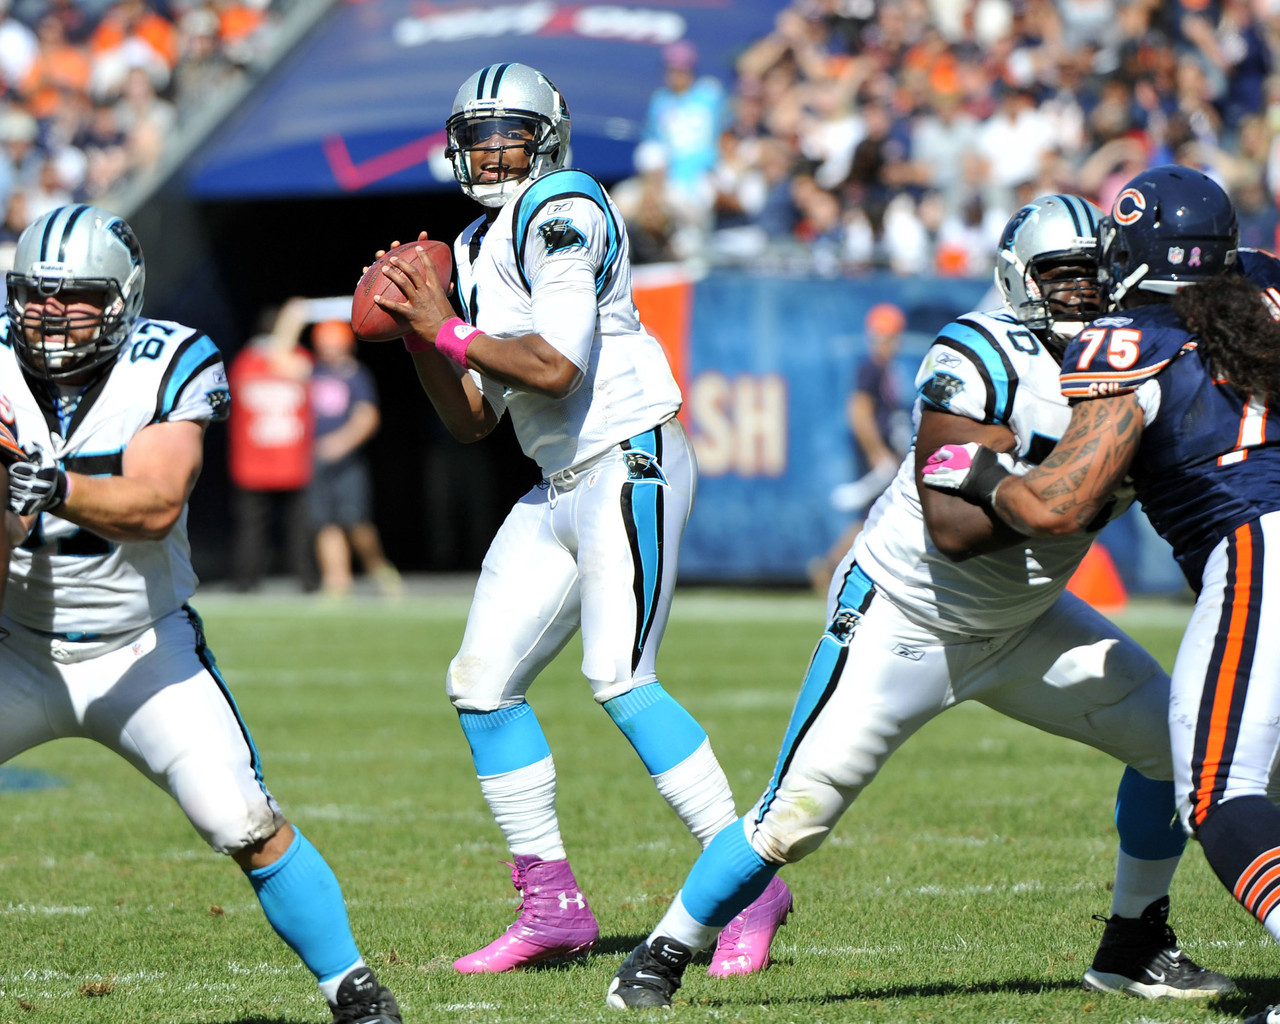 10. Cam Newton, Carolina Panthers